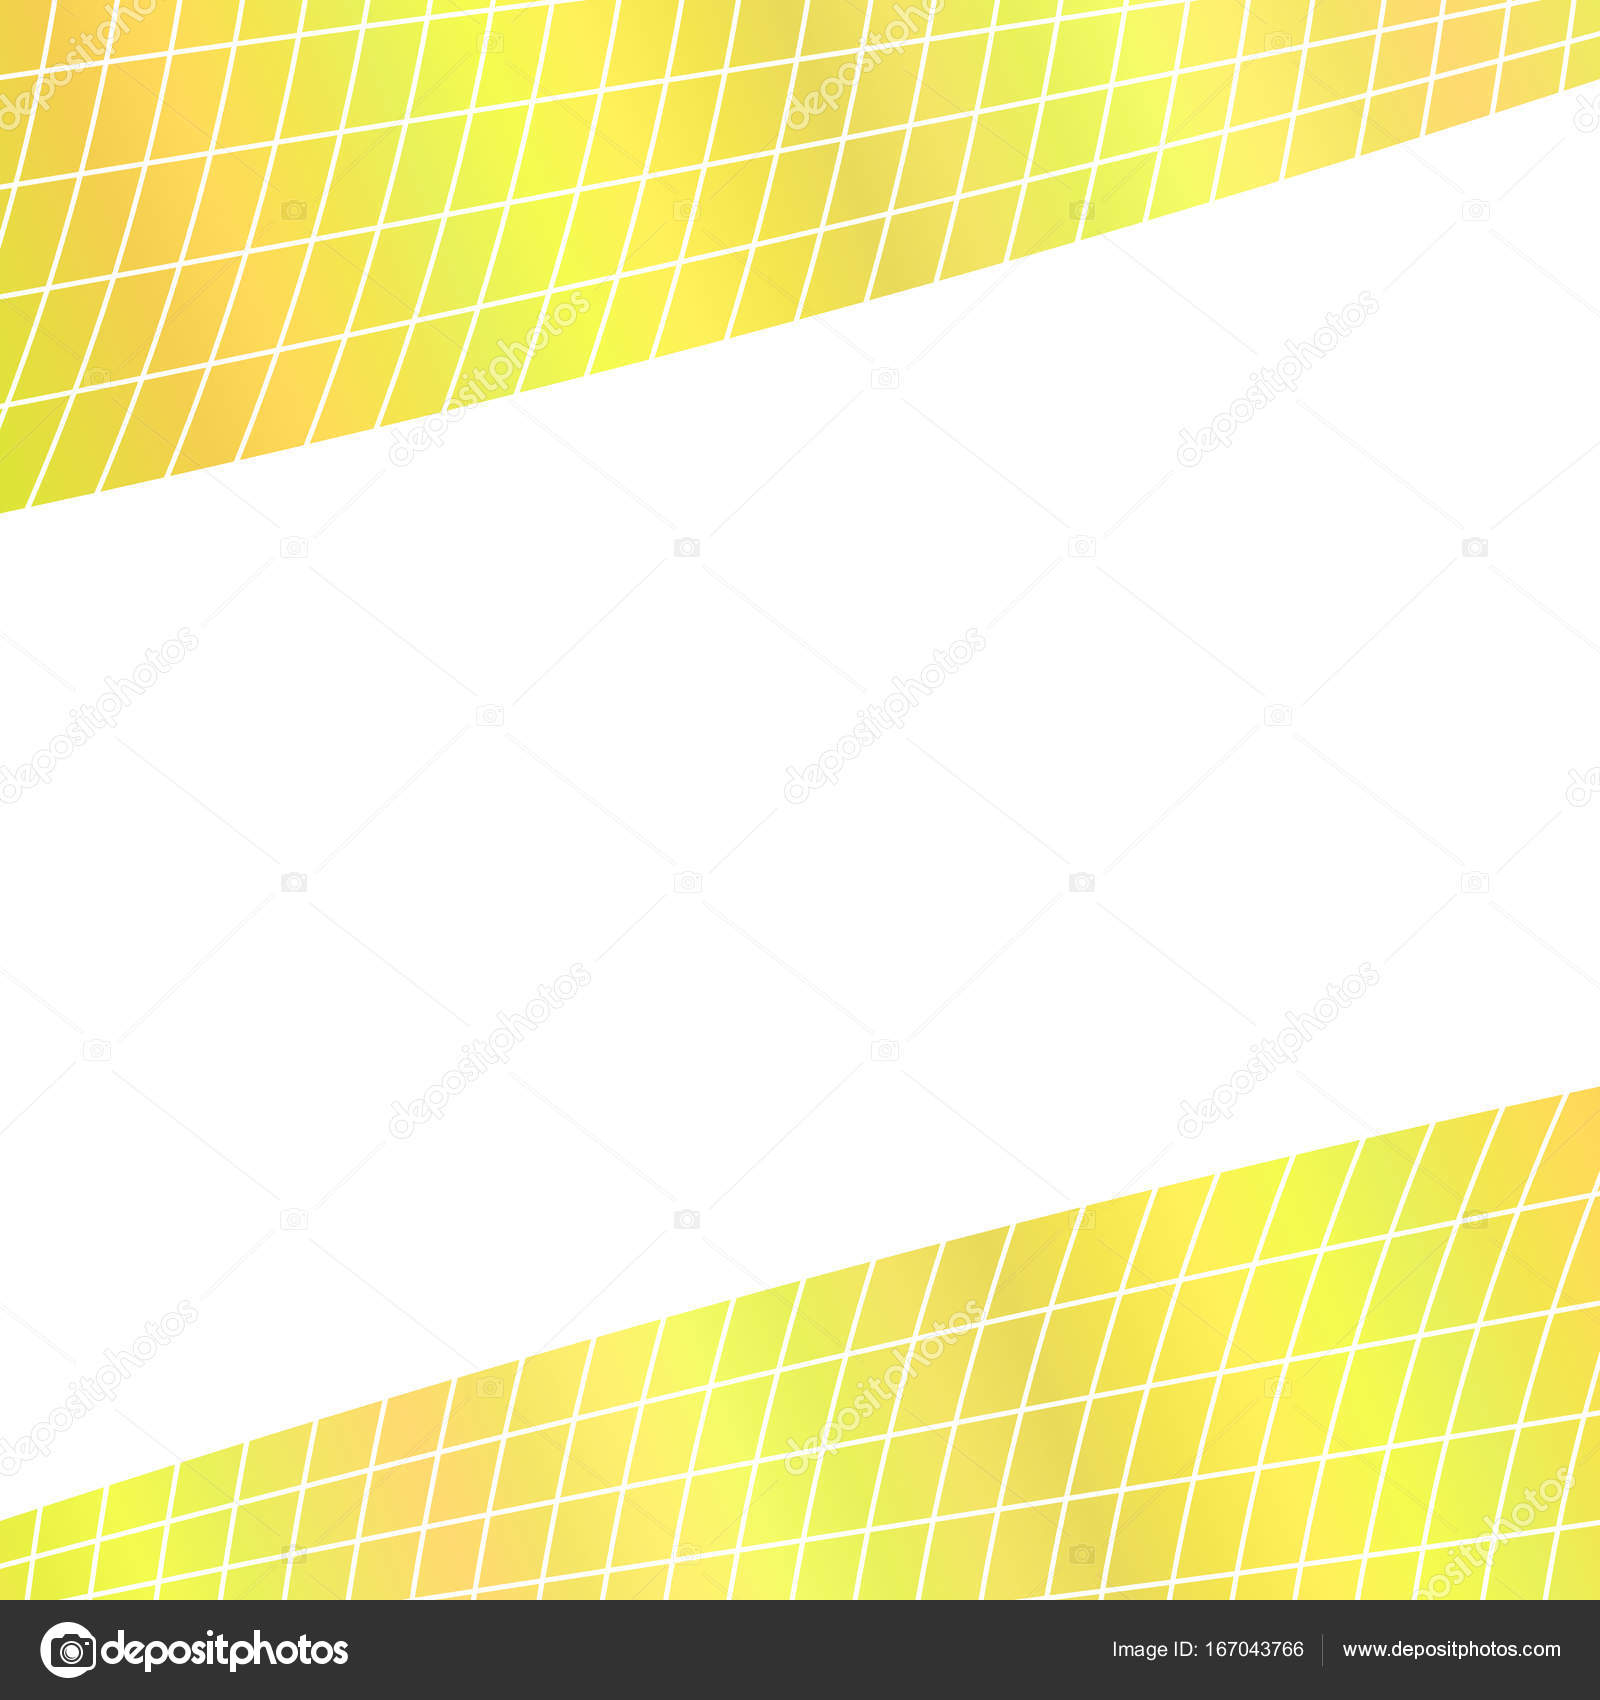 Abstract grid background - illustration from curved angular lines